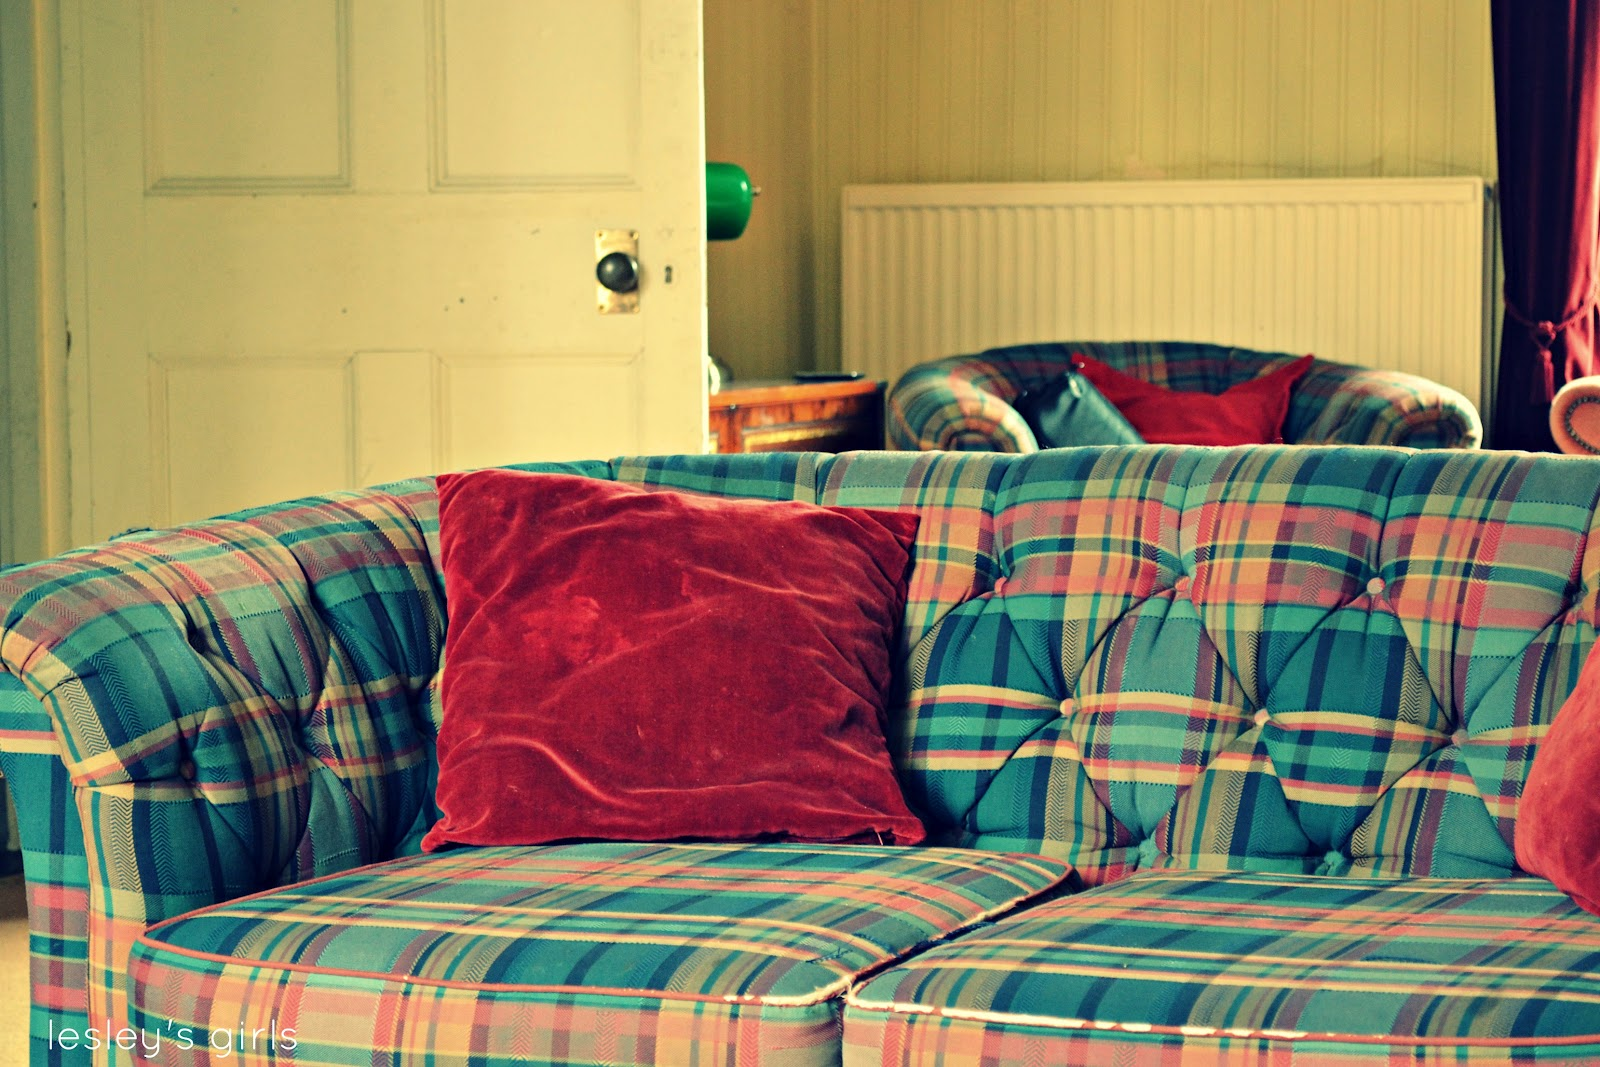 tartan chesterfield sofa flexsteel dylan leather conversation lesley 39s girls vintage lifestyle and fashion blog